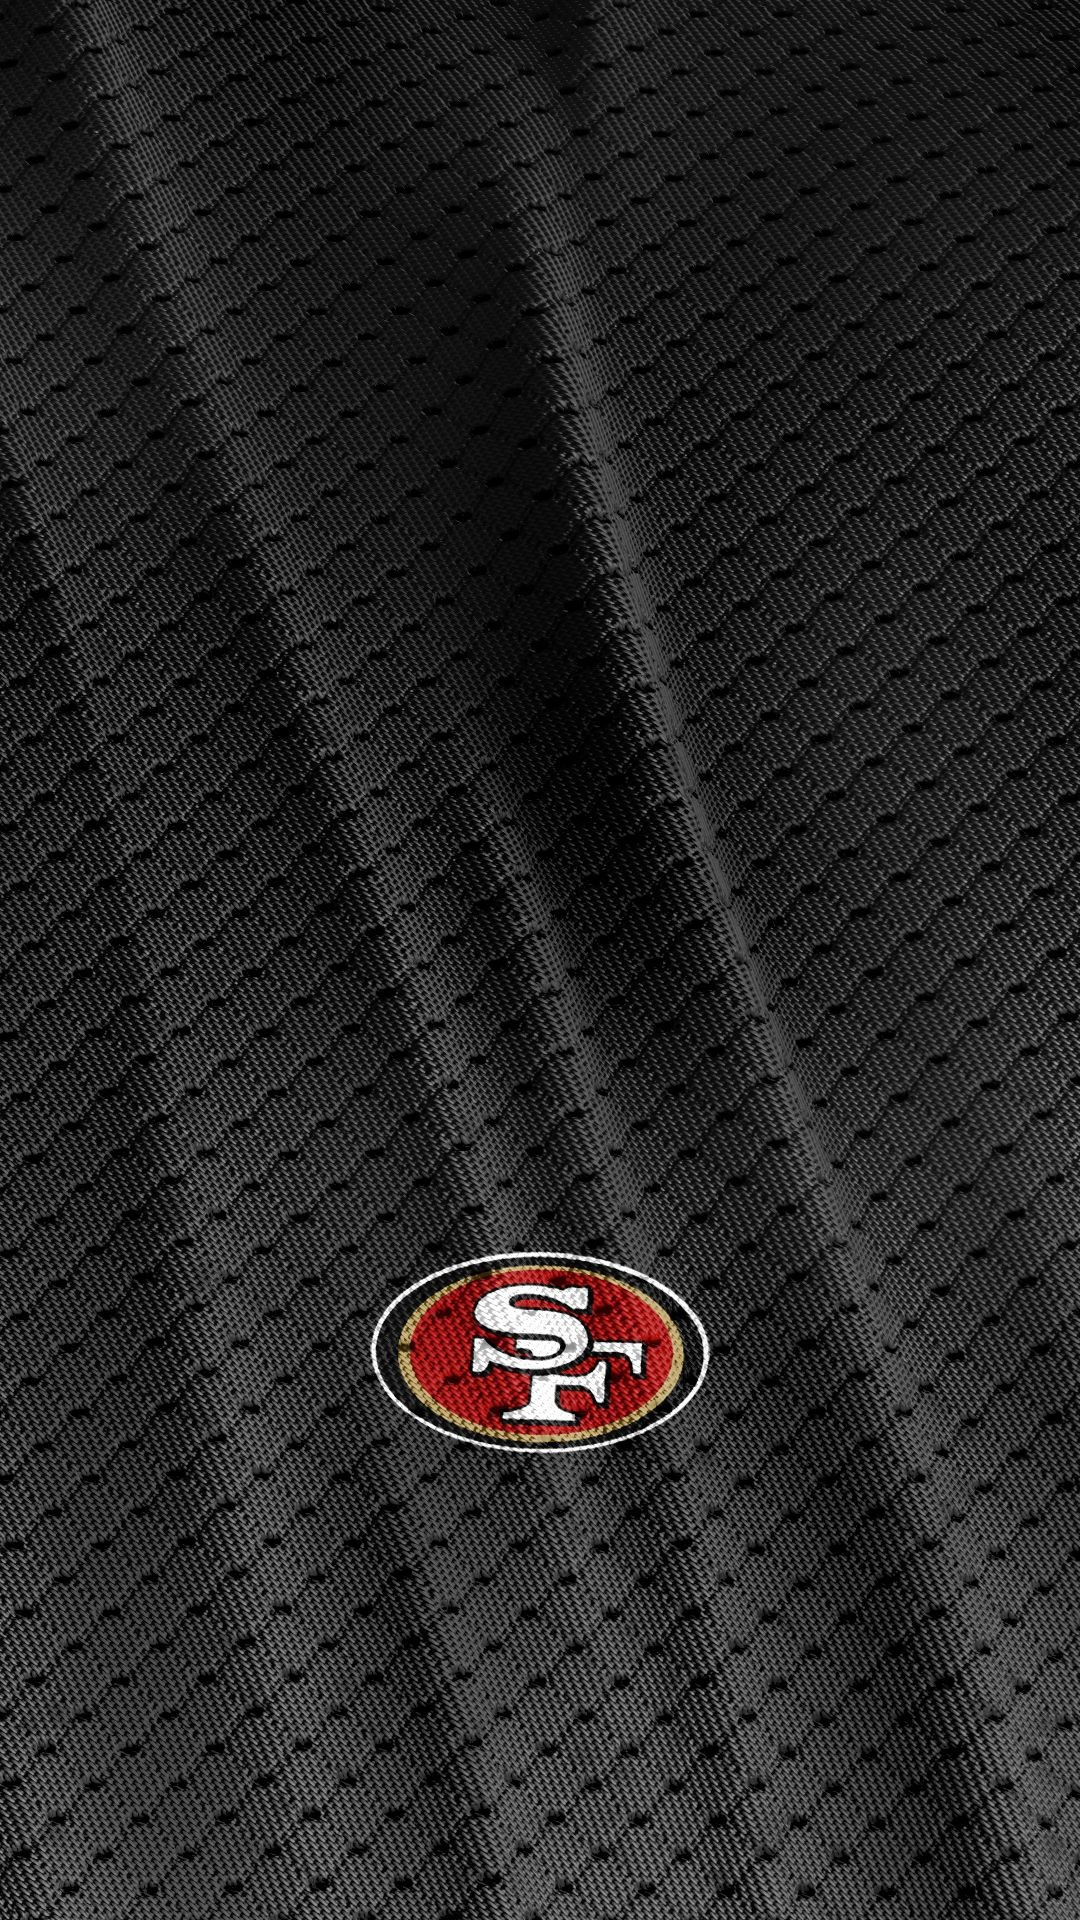 49ers Wallpapers 76 Background Pictures